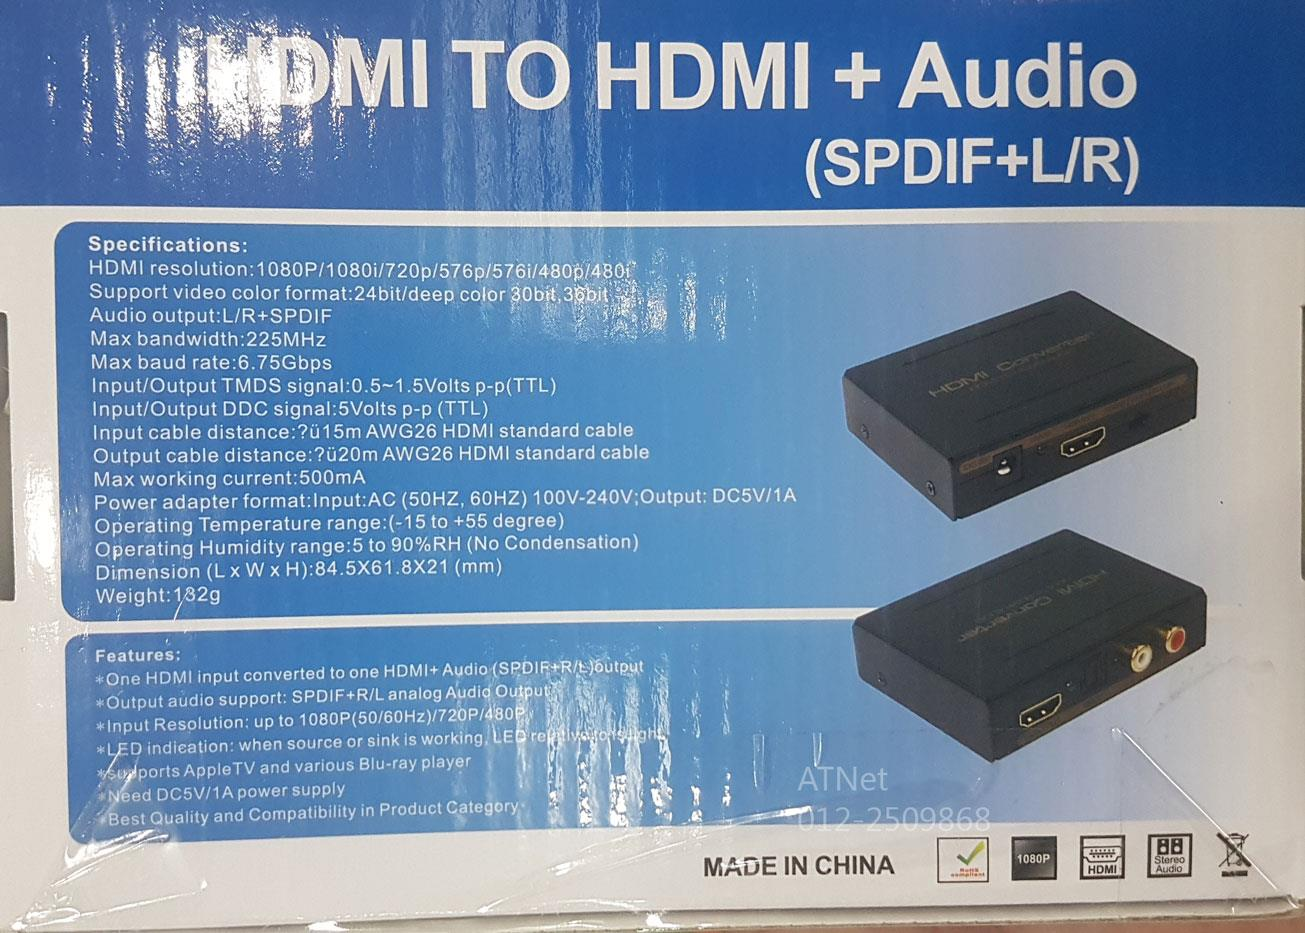 HDMI TO HDMI + AUDIO SPDIF + L/R (AY60)